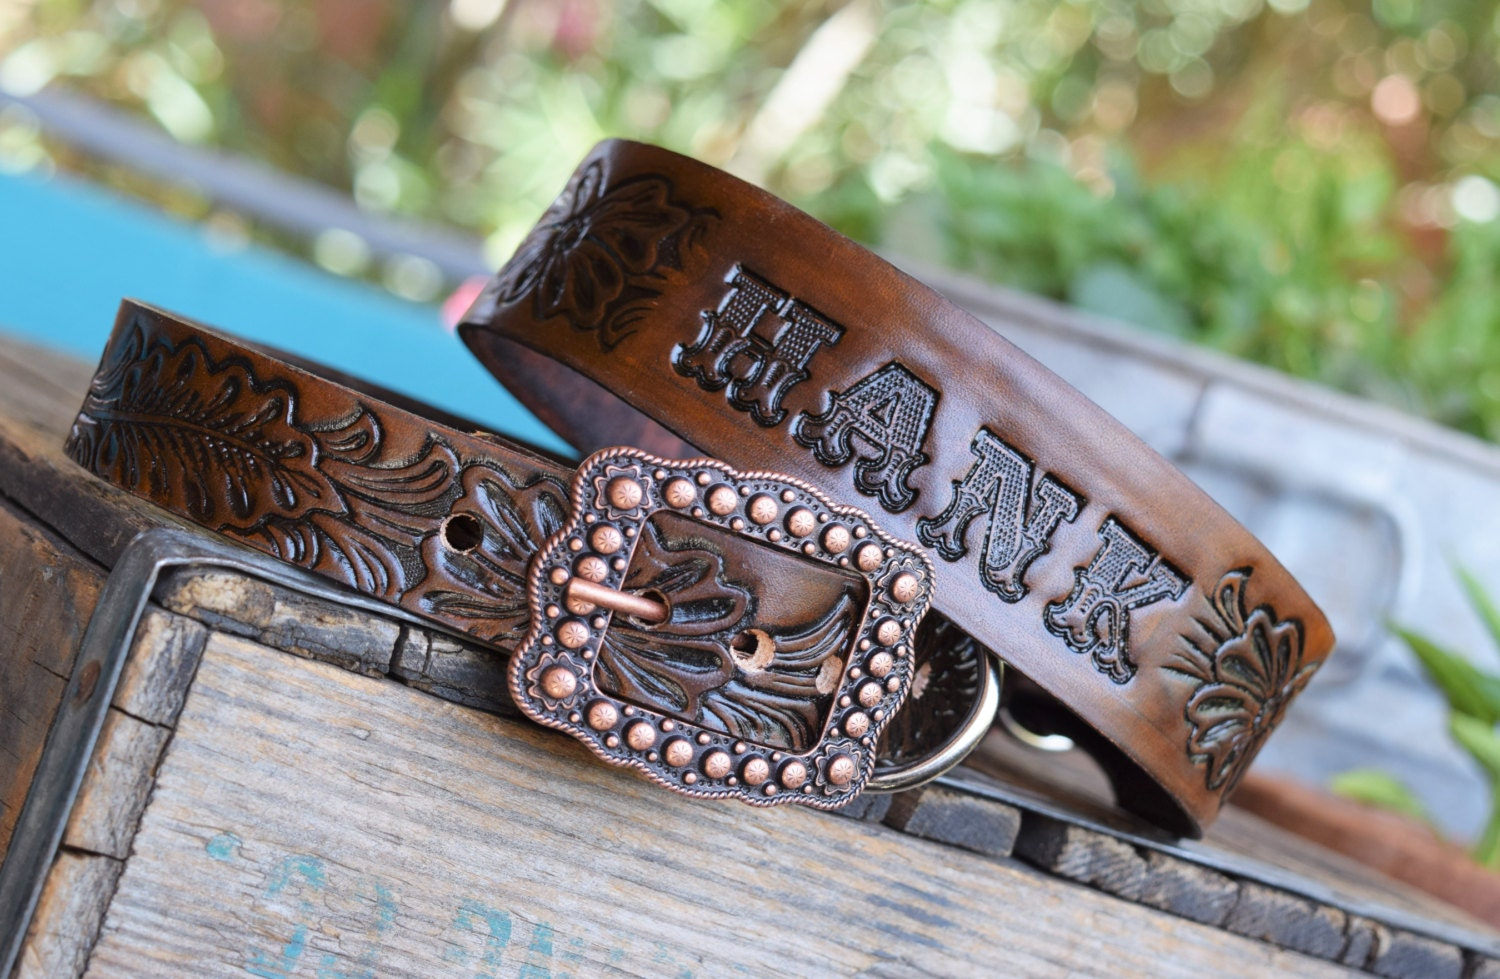 Western Tooled Leather Dog Collars